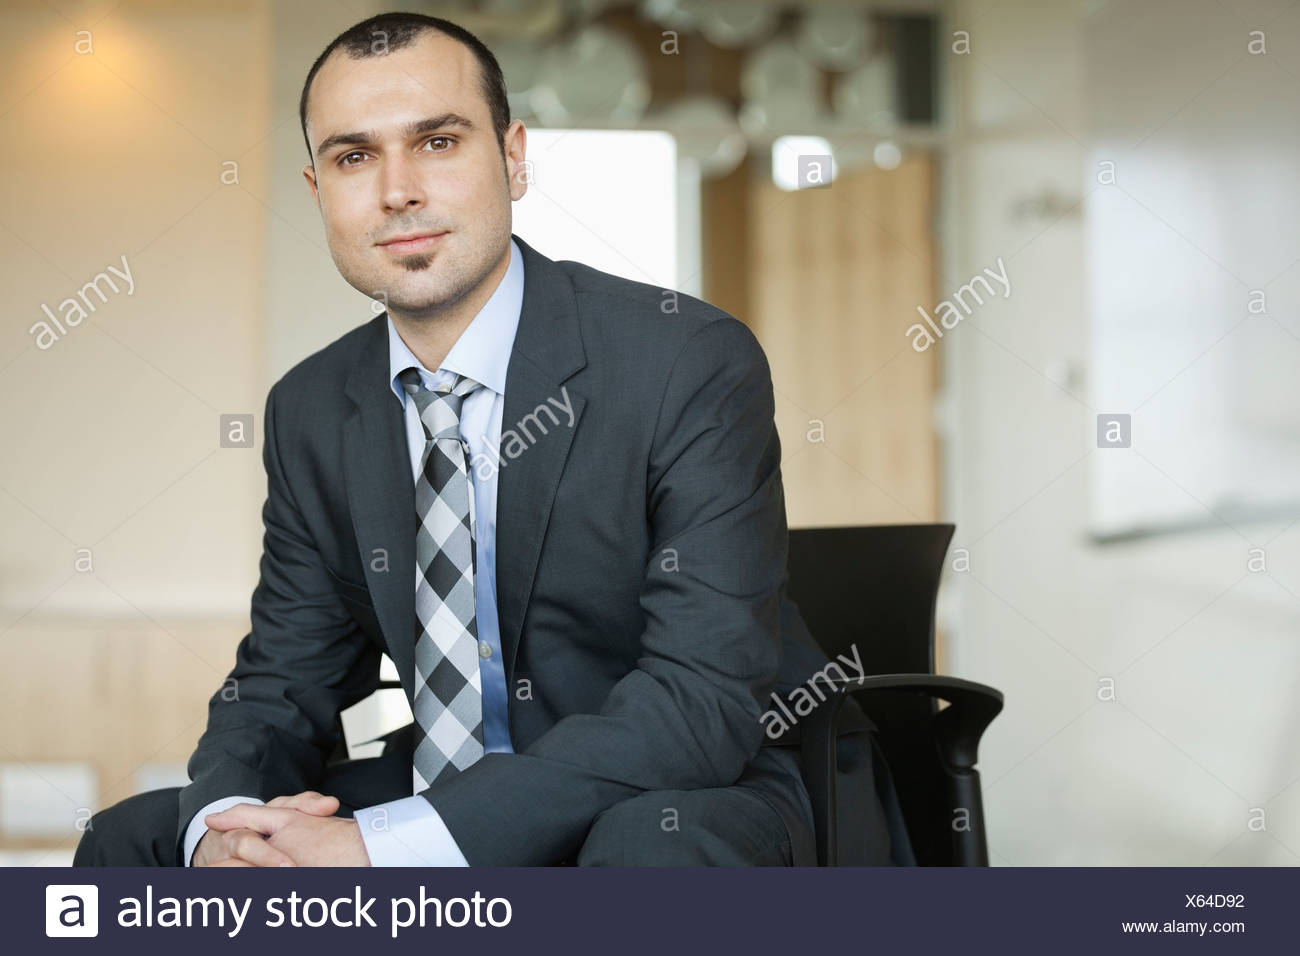 Portrait of confident businessman sitting on chair - Stock Image